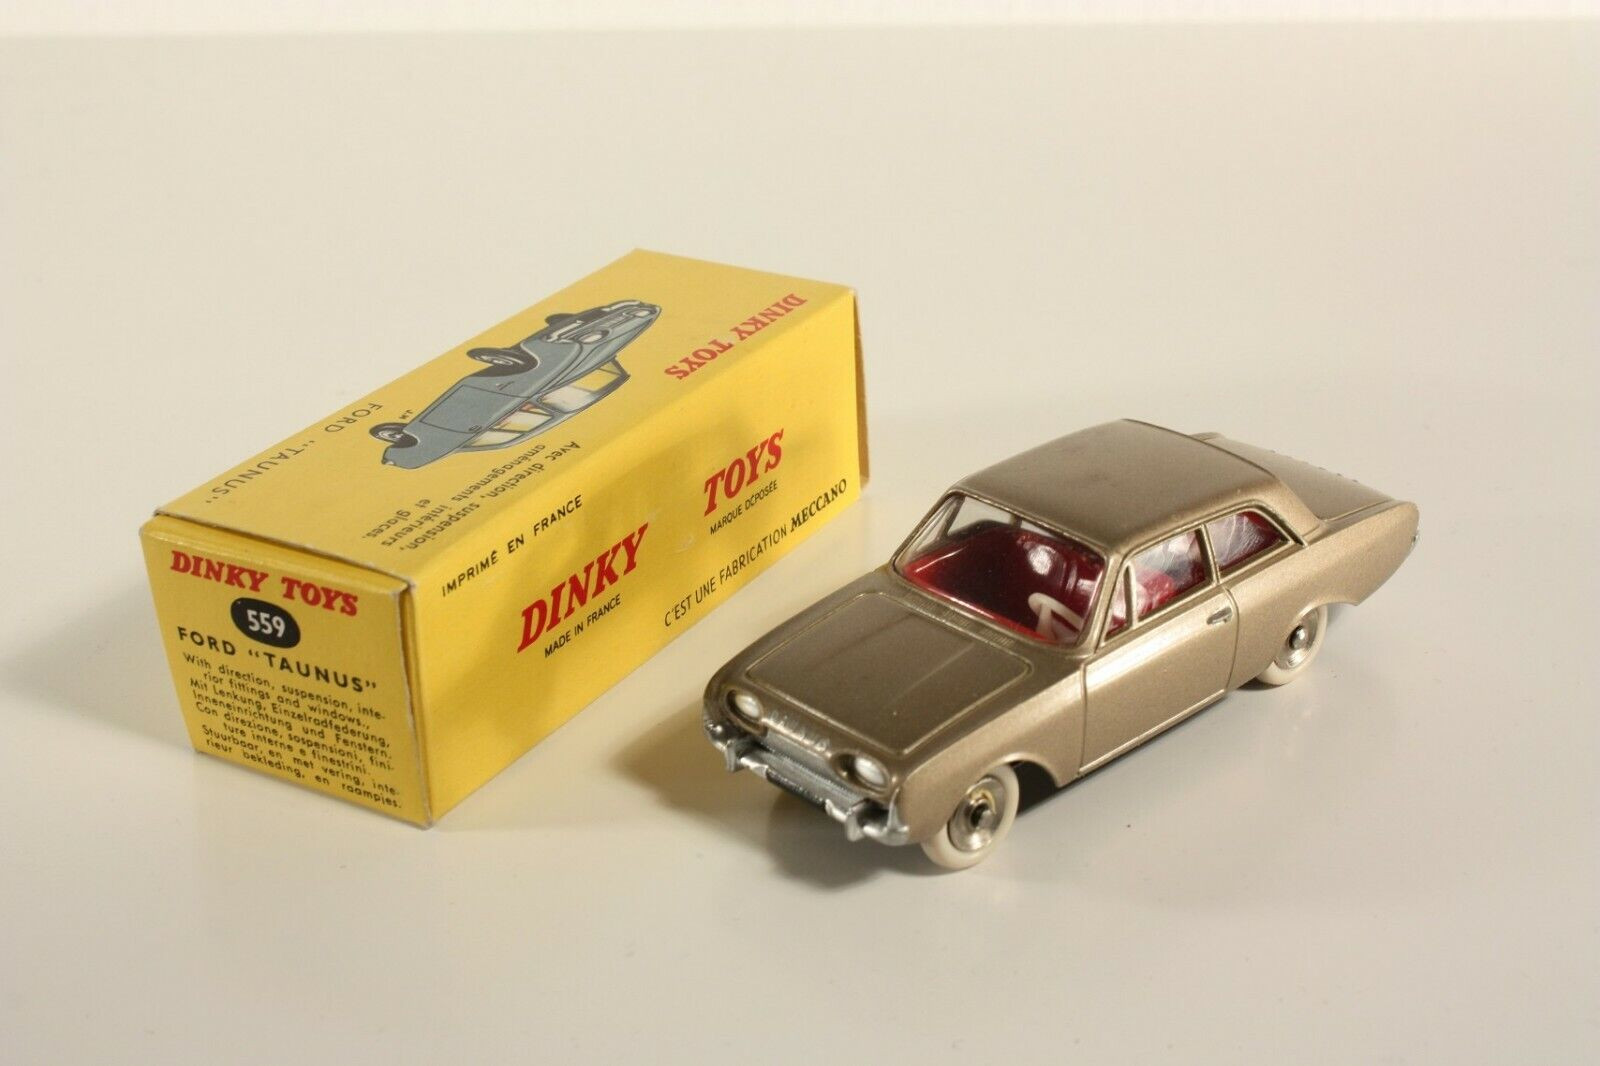 DINKY TOYS 559, Ford Taunus, Comme neuf Dans Box  ab2179